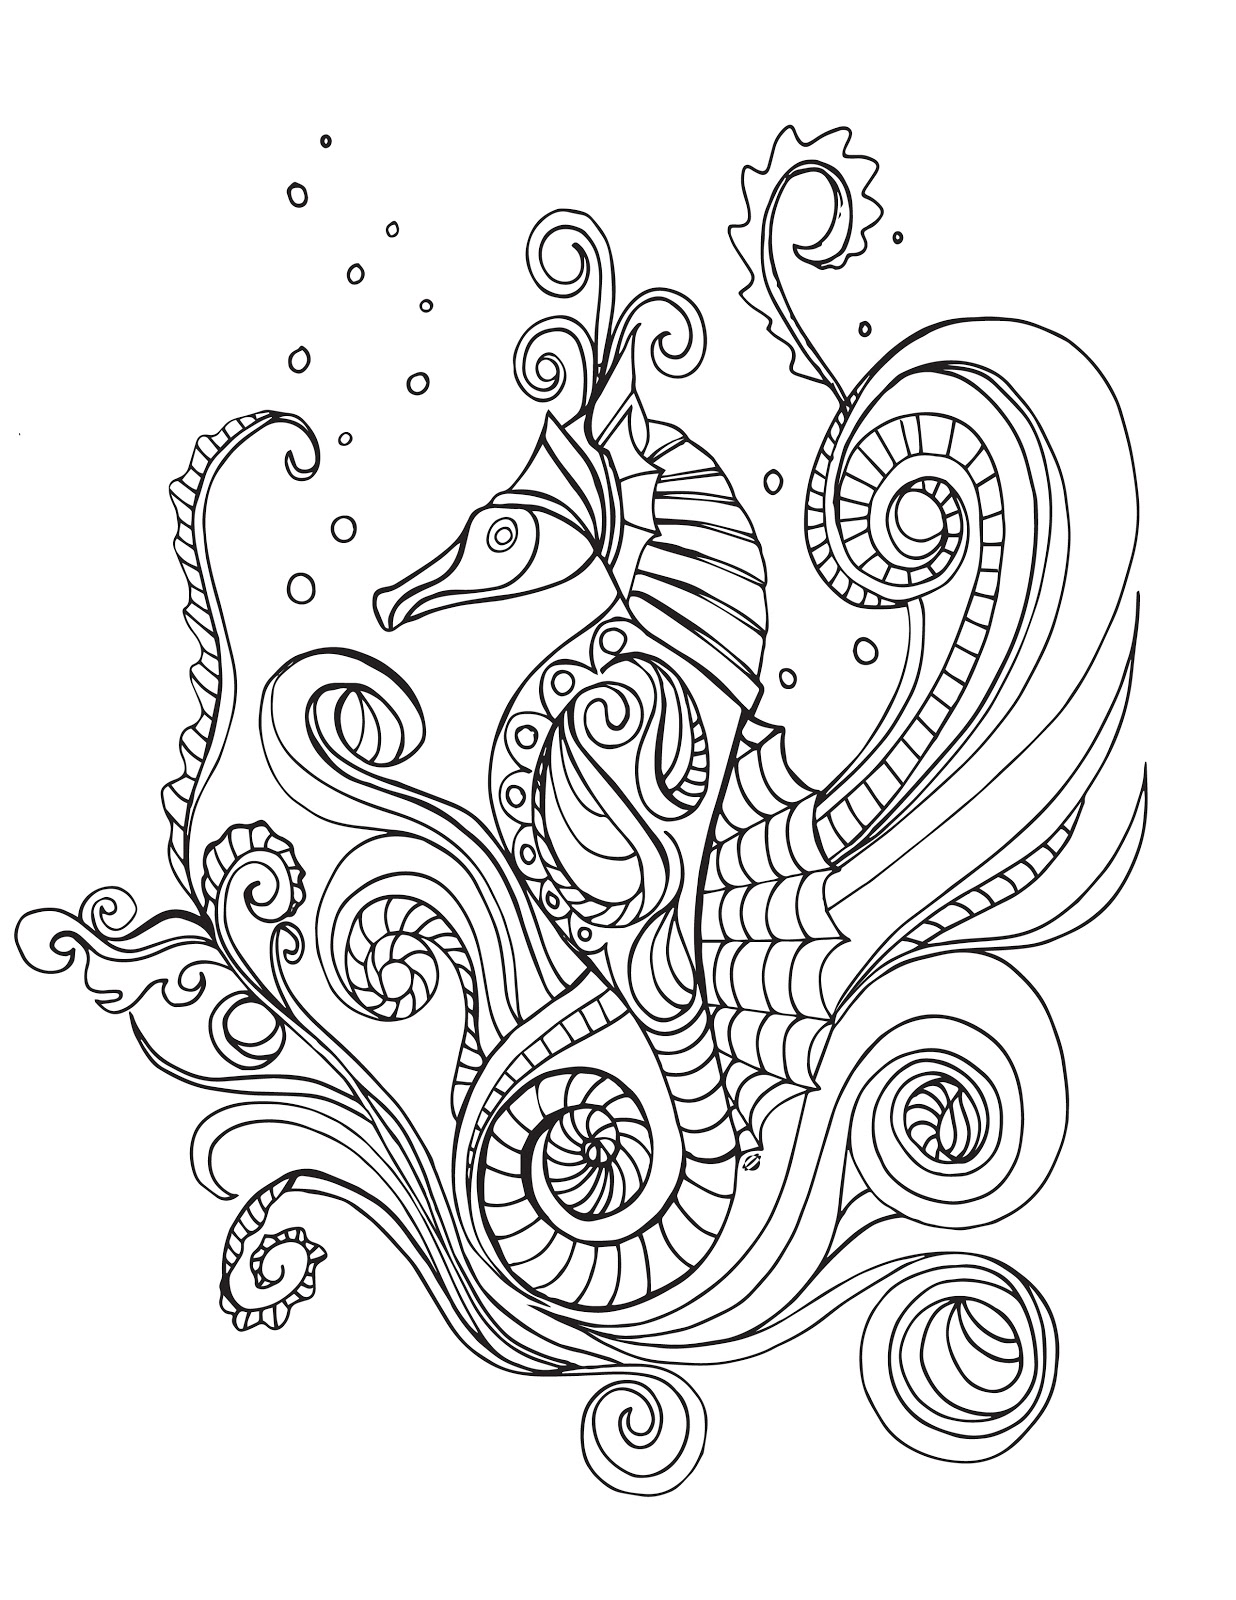 Coloring Pages For Grown Ups : Free grown up coloring pages